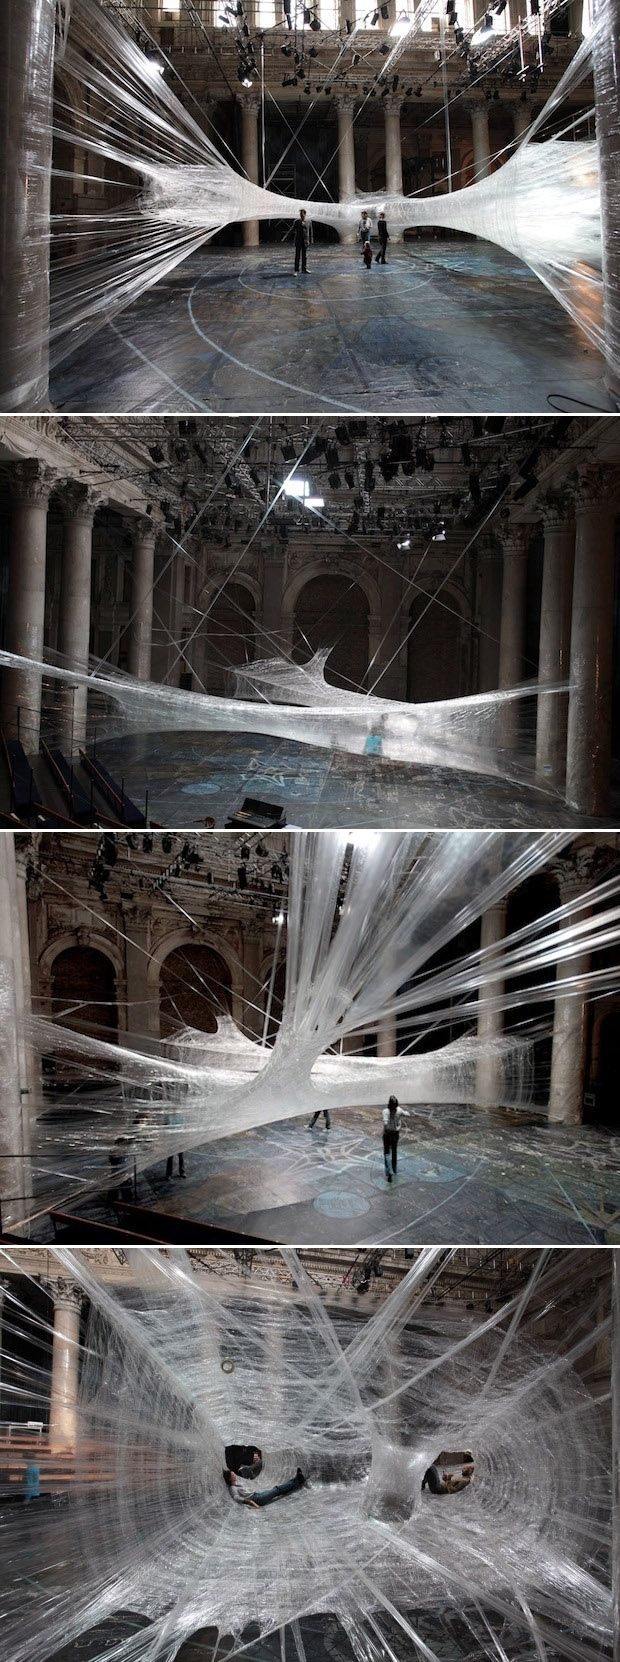 Spider Web Installation Made of Packaging Tape